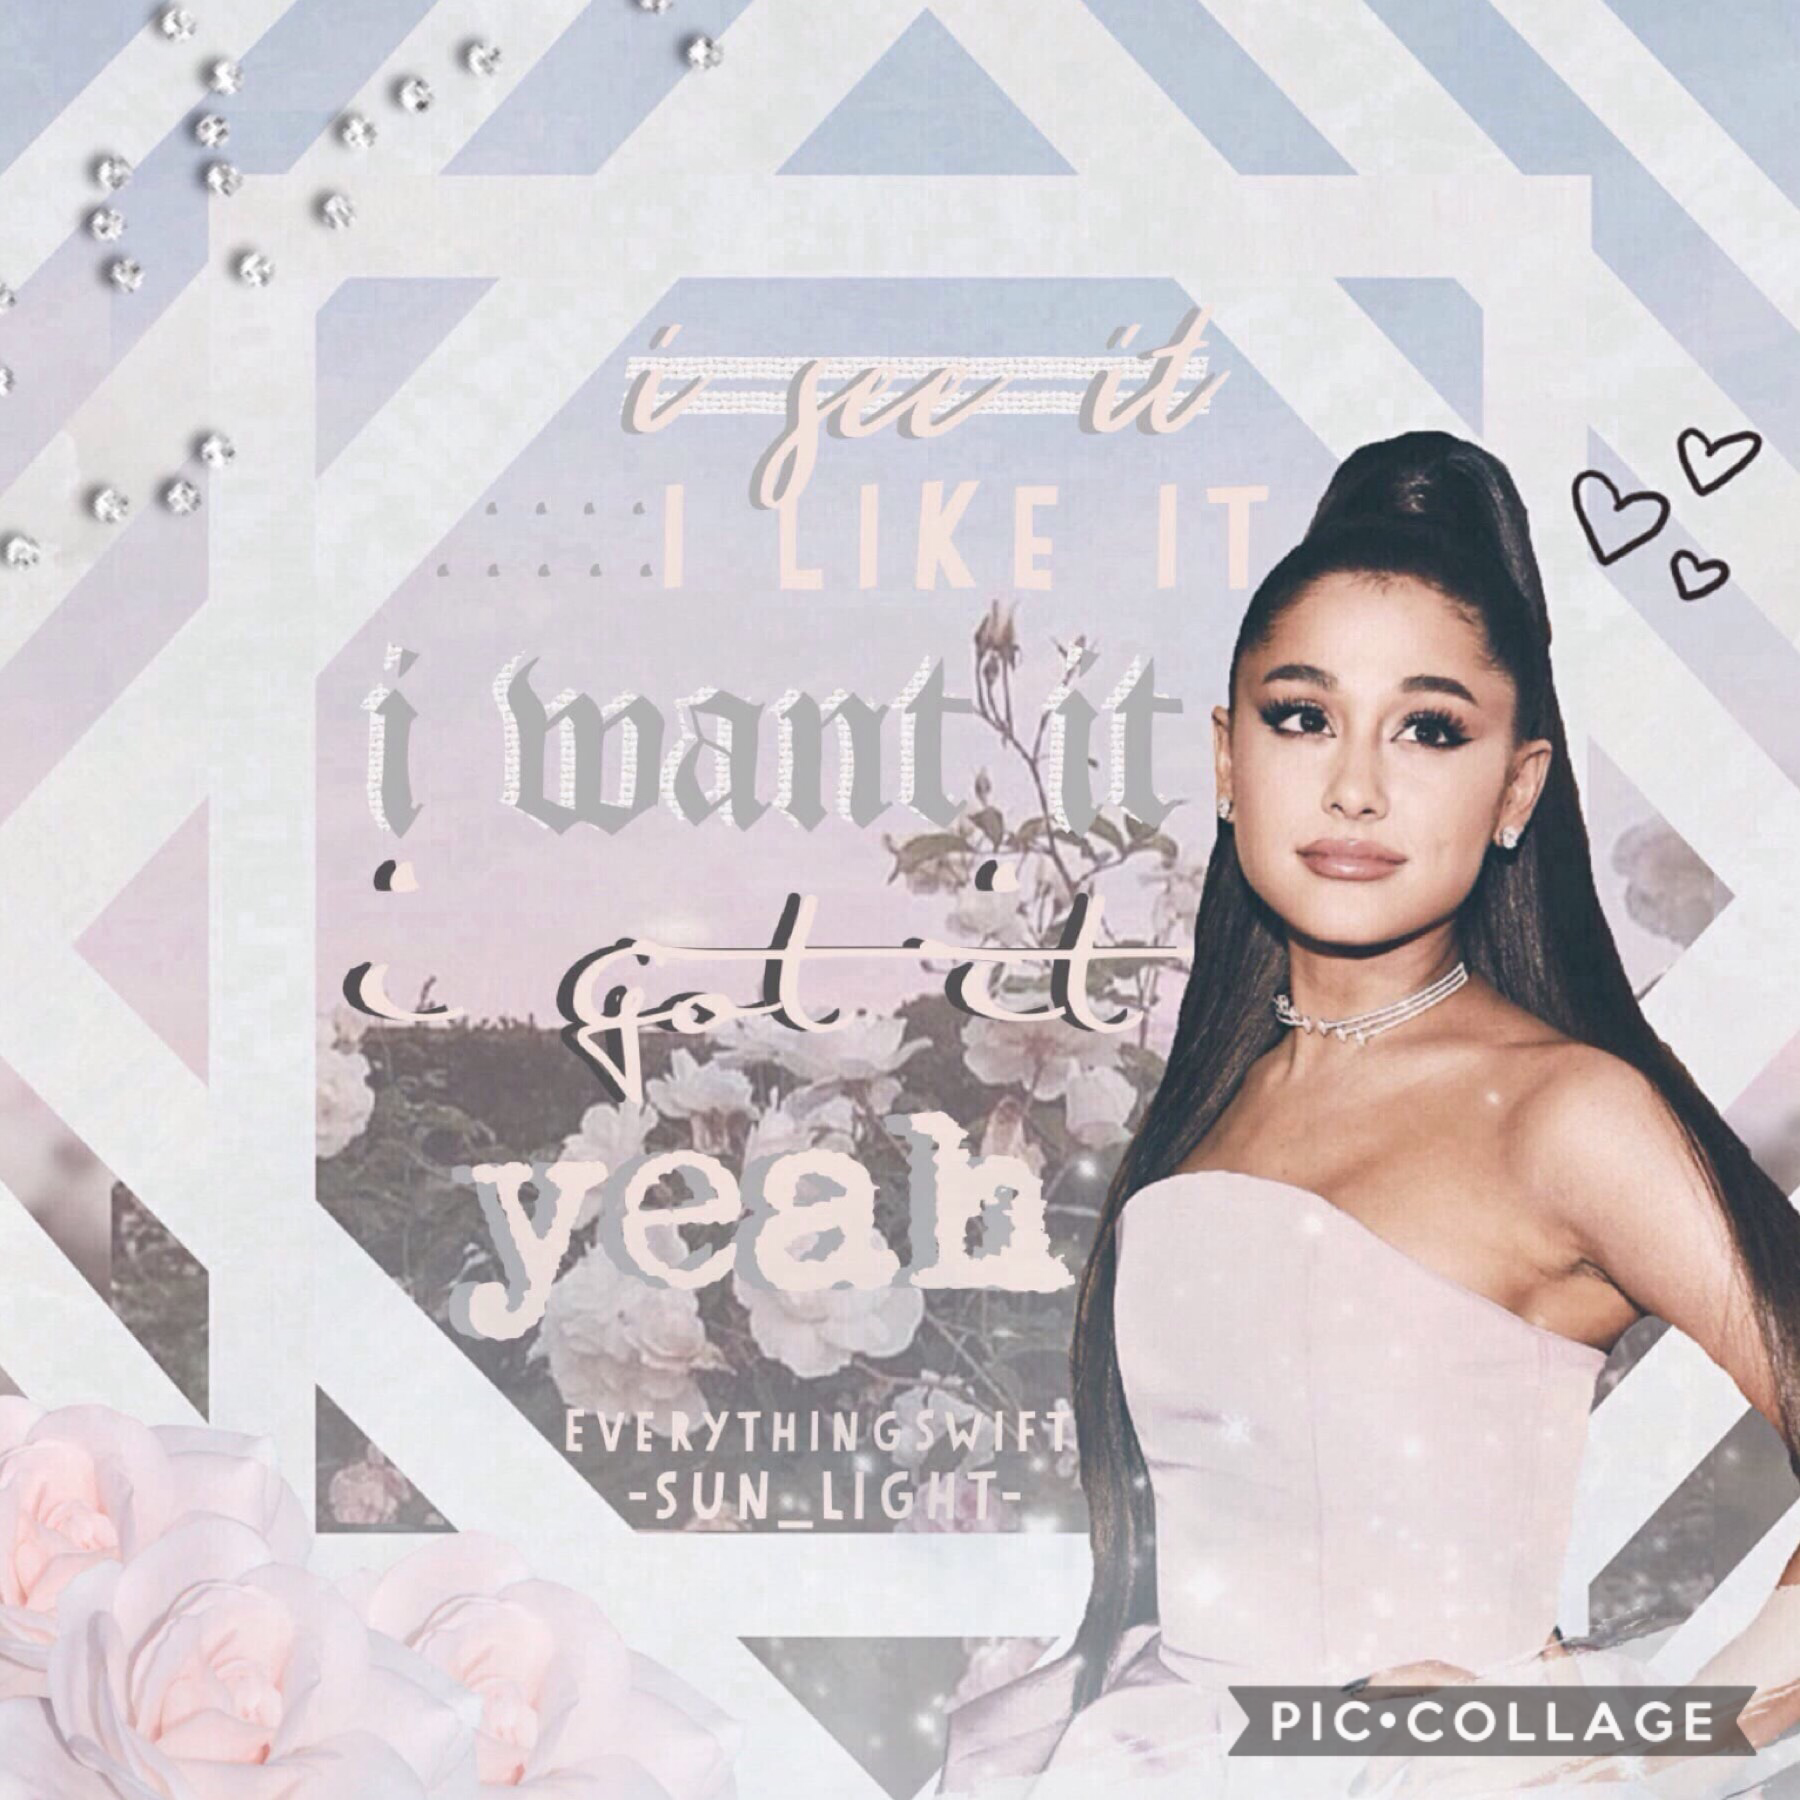 🌿an amazing collab with the truly talented @EverythingSwift!🌿she is super talented and check her out acc out!!🌈💕 I am literally listening to the whole sweetener album 24/7 and ari's new song is amazing!! wow...such a fangirl😂💖 new post coming soon!...be r